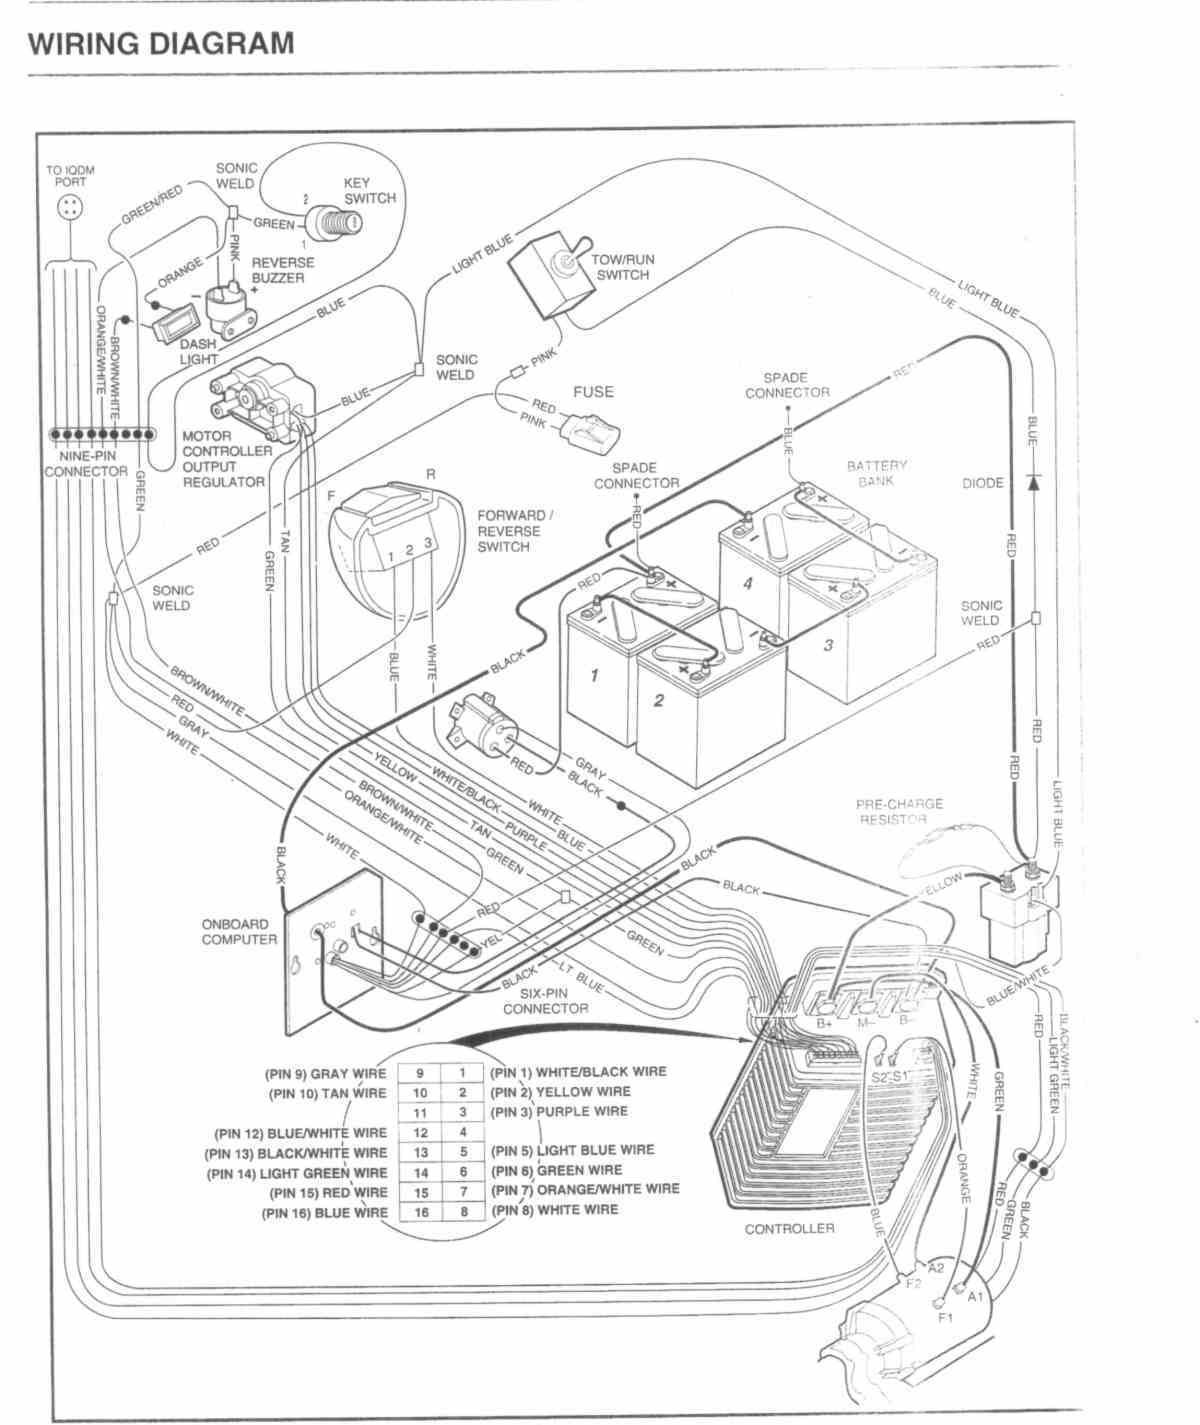 36v club car wiring diagram delco cs alternator 1986